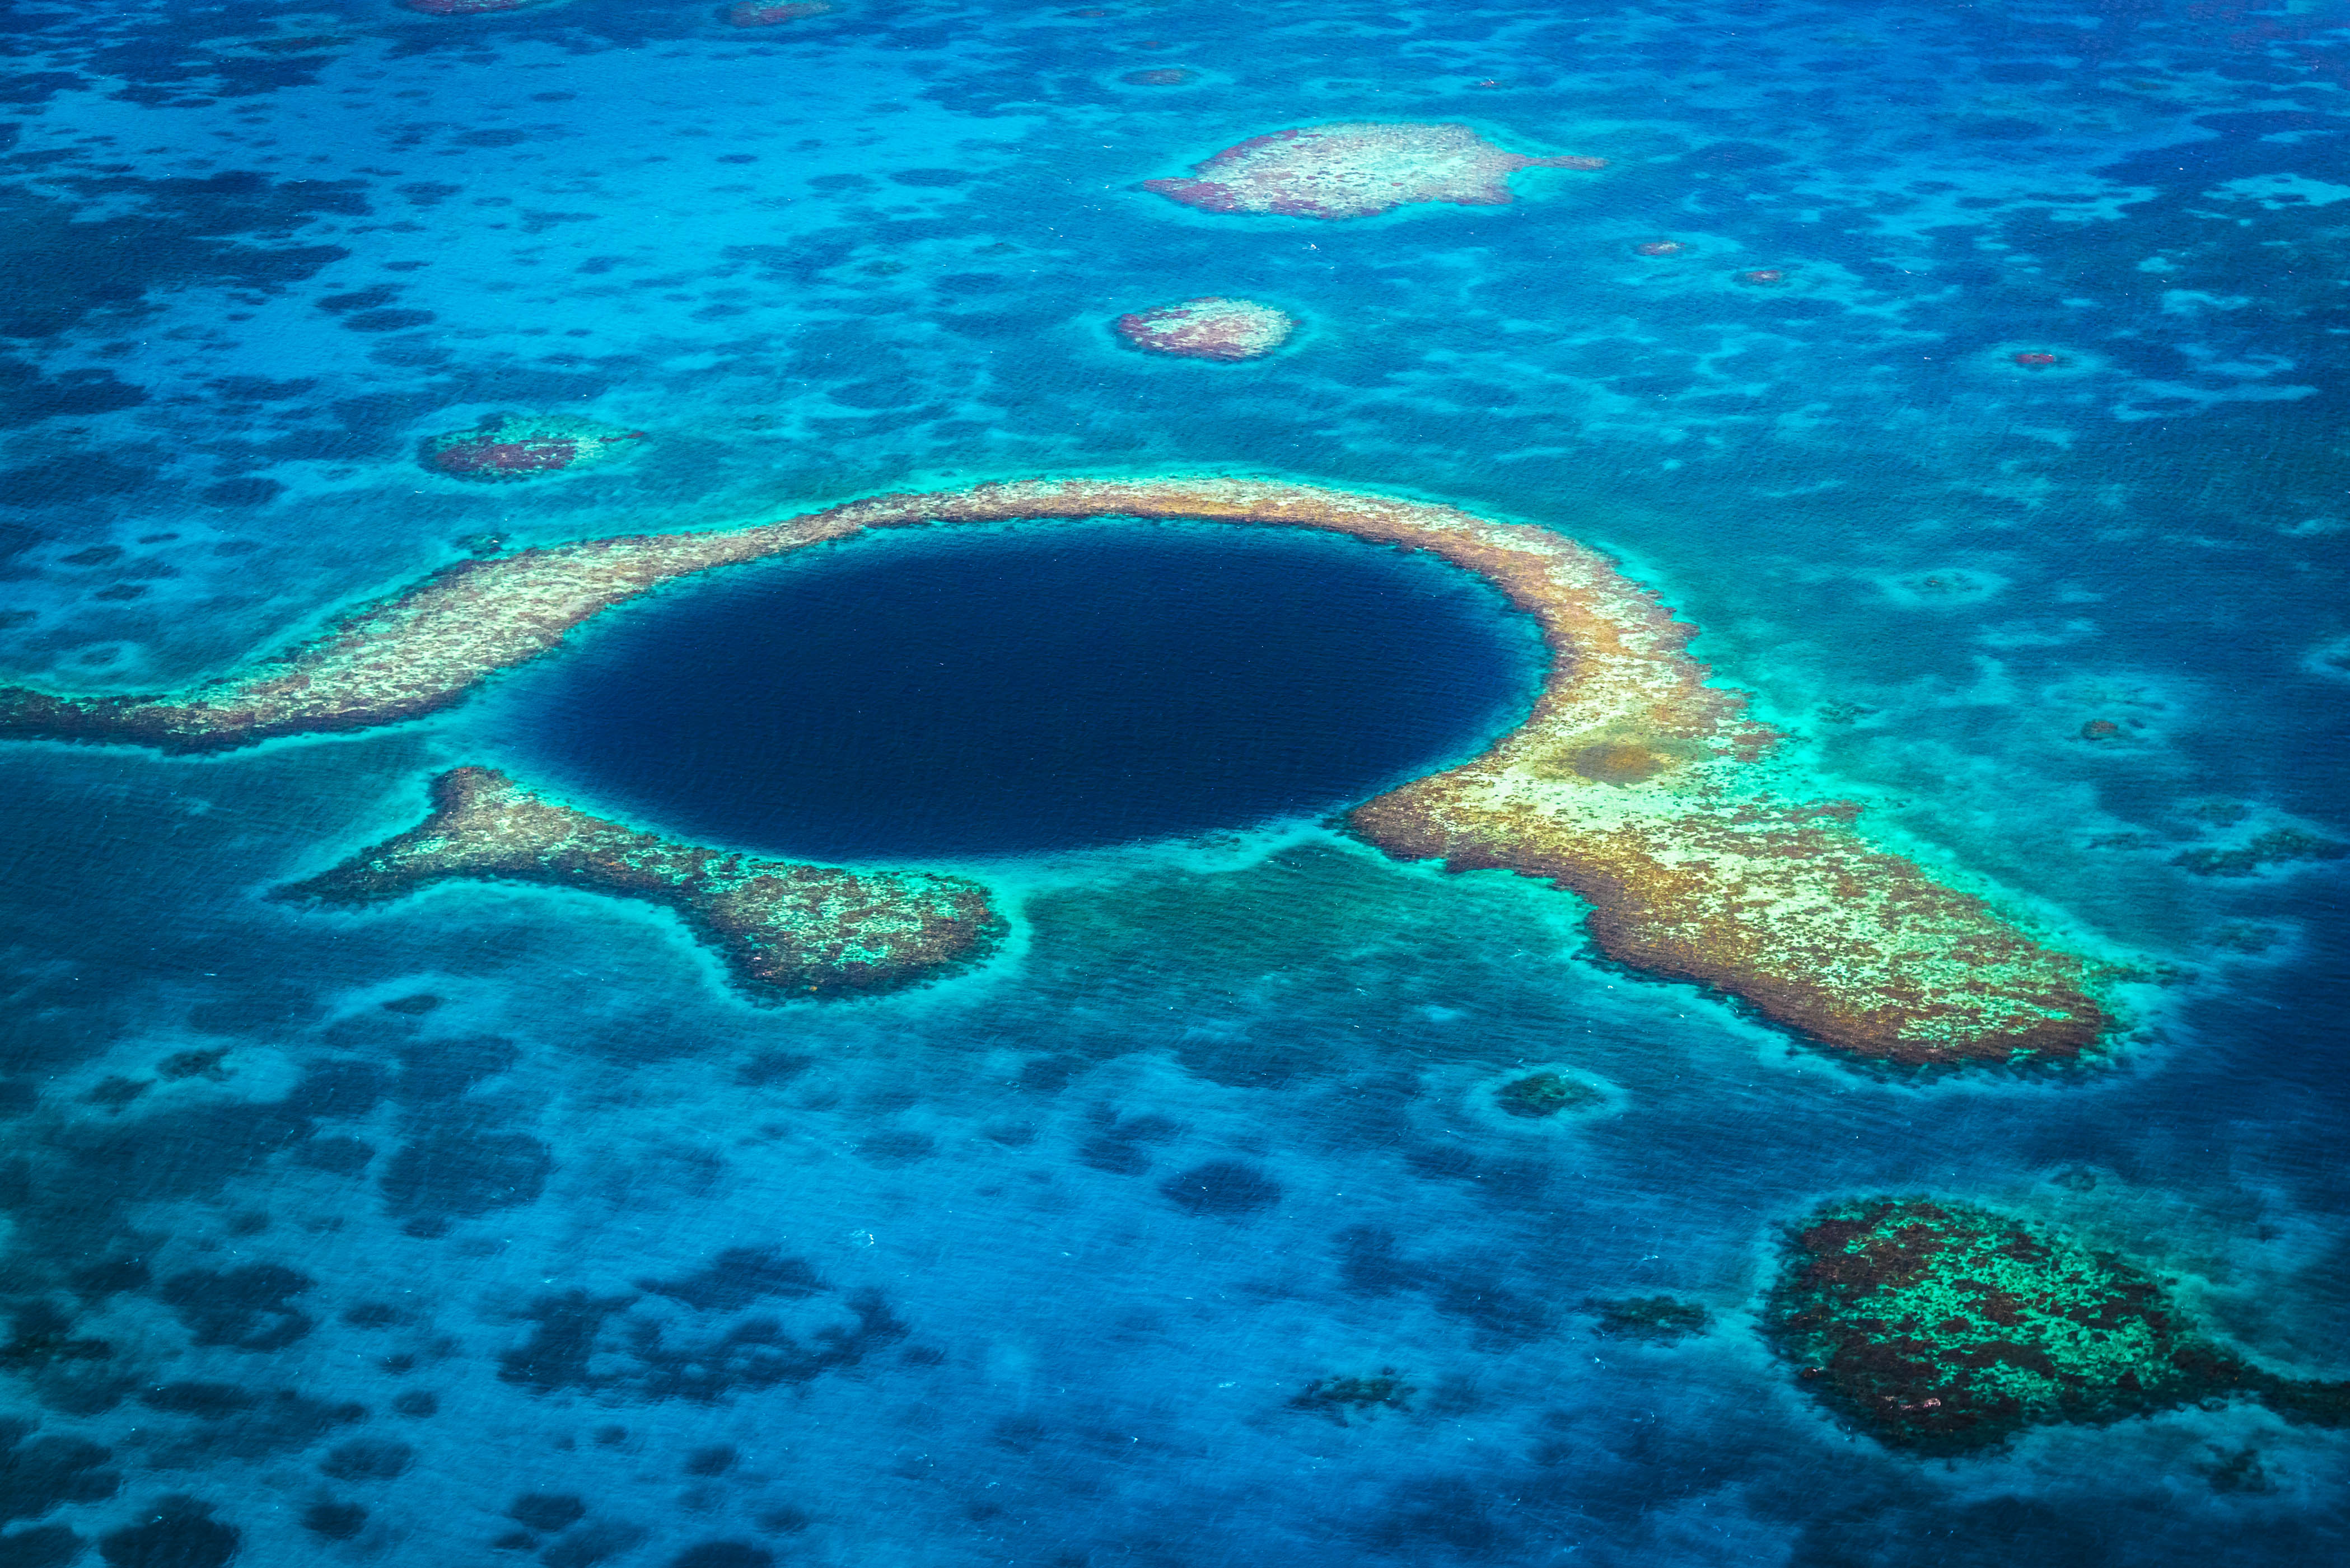 Naturphänomene Blue Hole in Belize